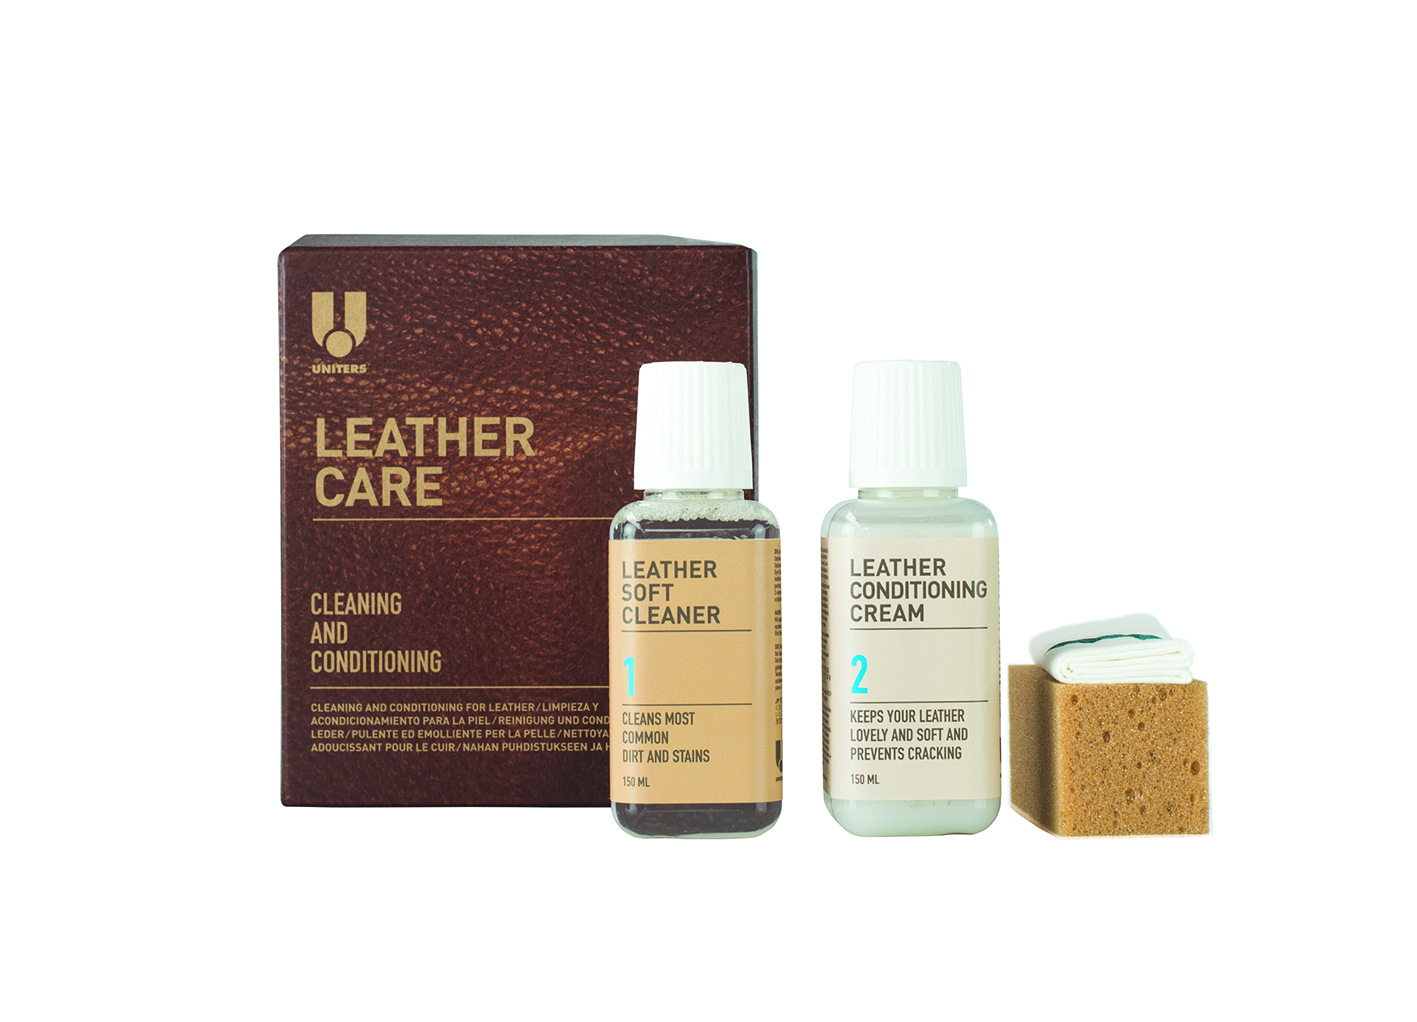 LEATHER CARE KIT MIDI